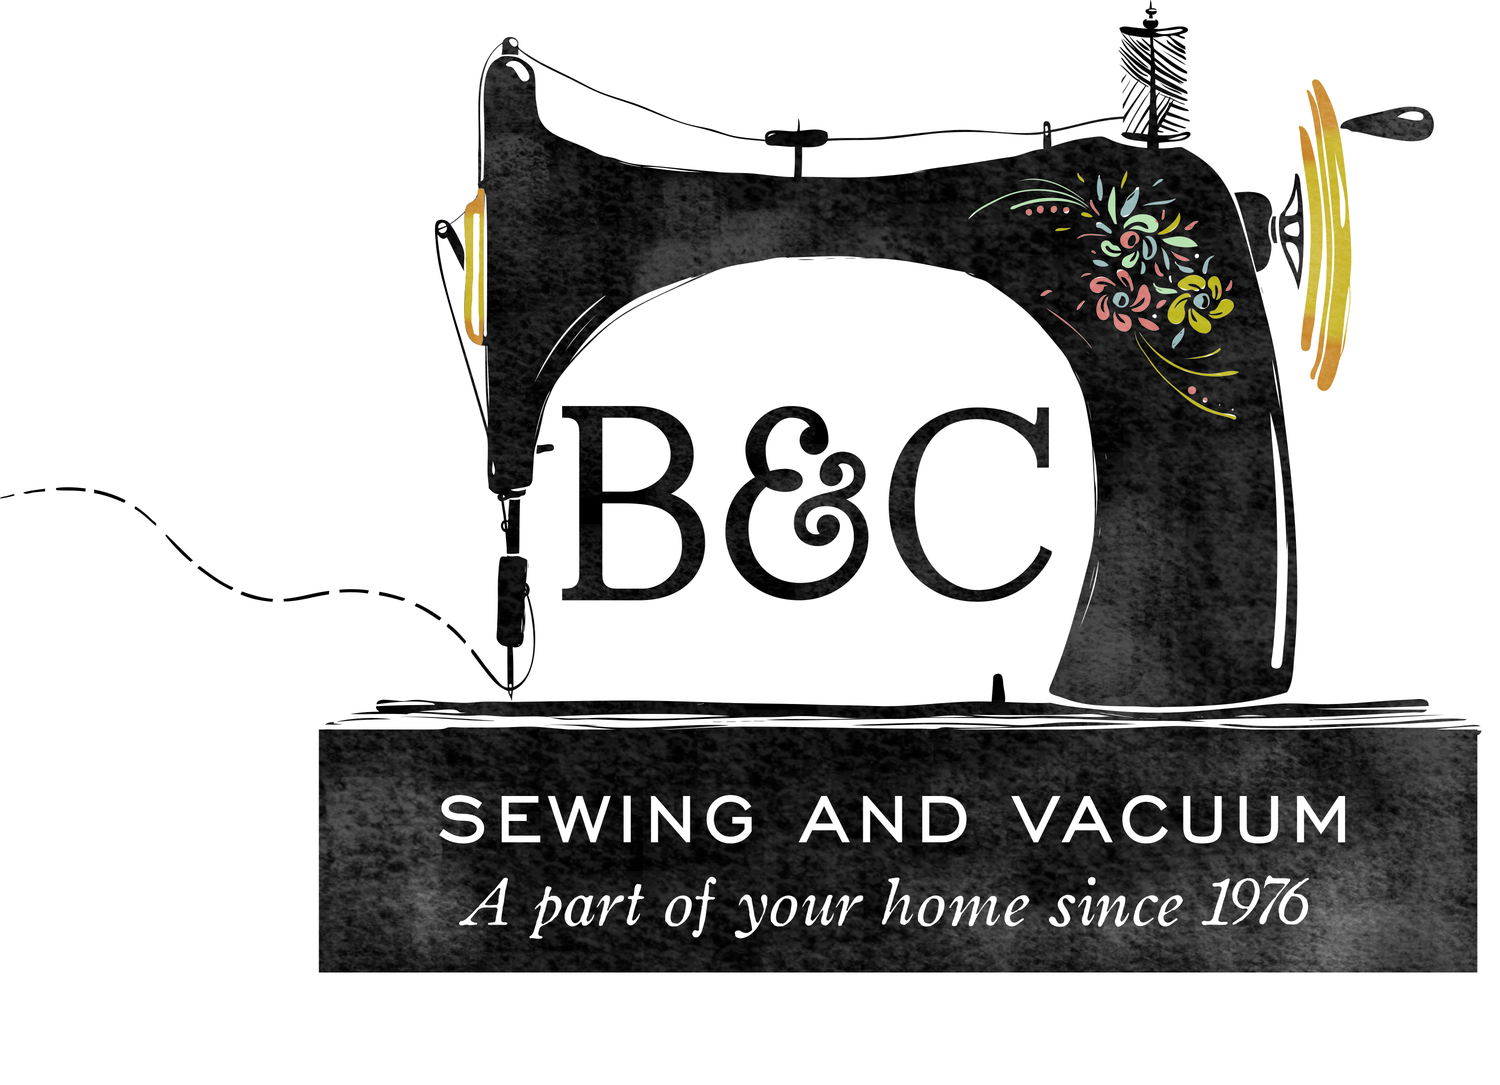 B&C Sewing and Vacuum